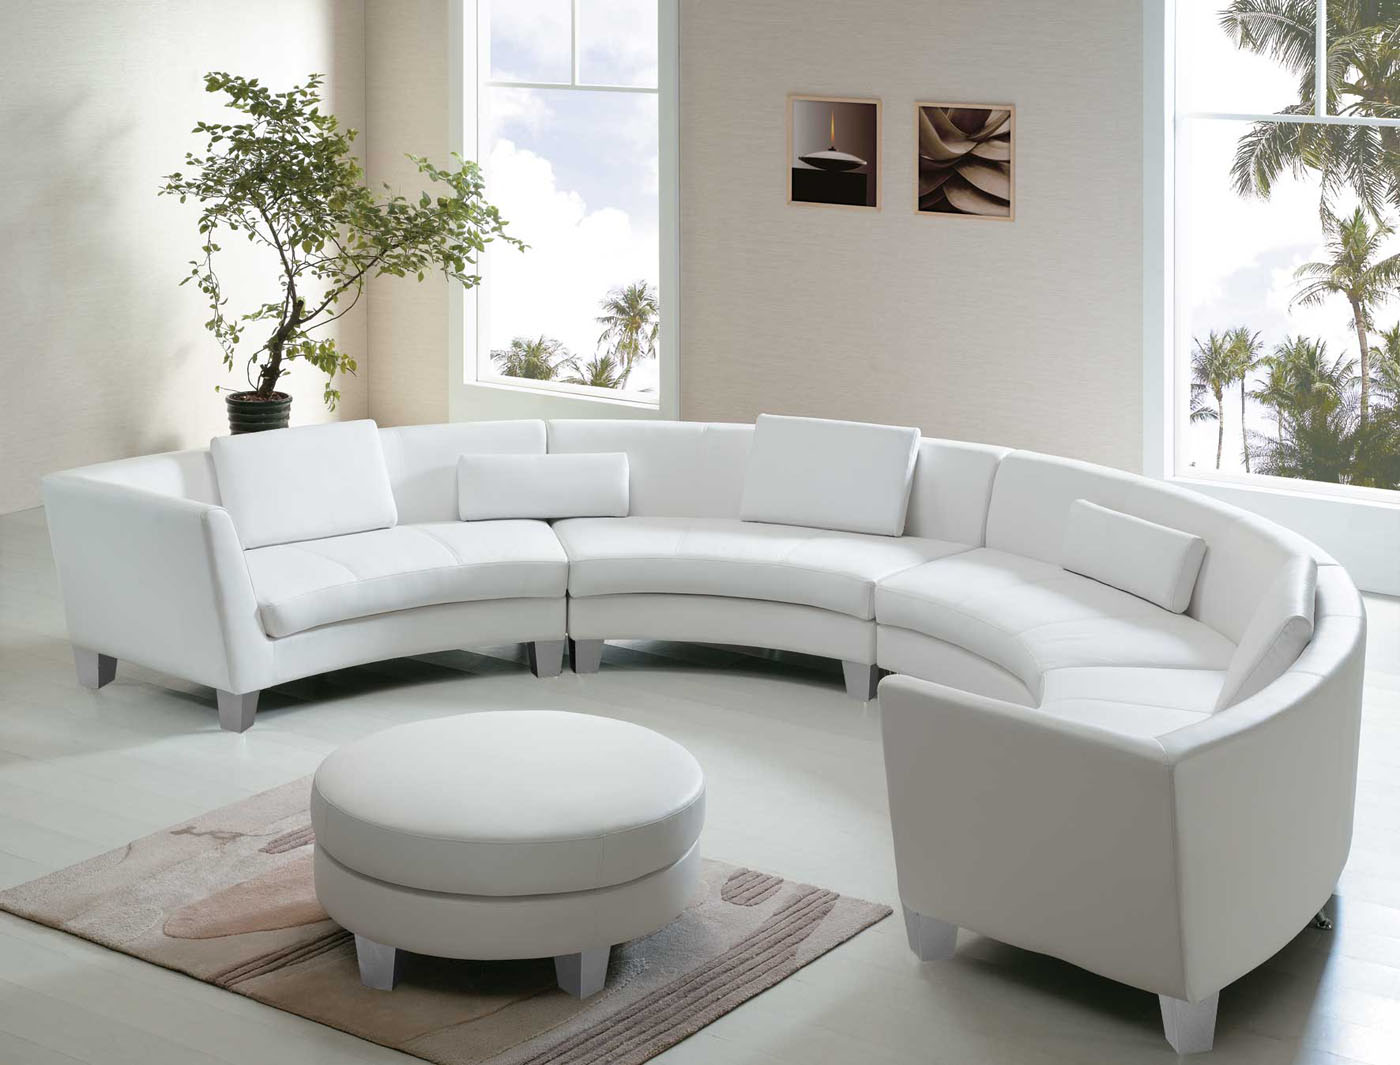 charming cheap sectional sofas in solid white on white ceramics floor plus small rugs and white round ottoman for living room decor ideas